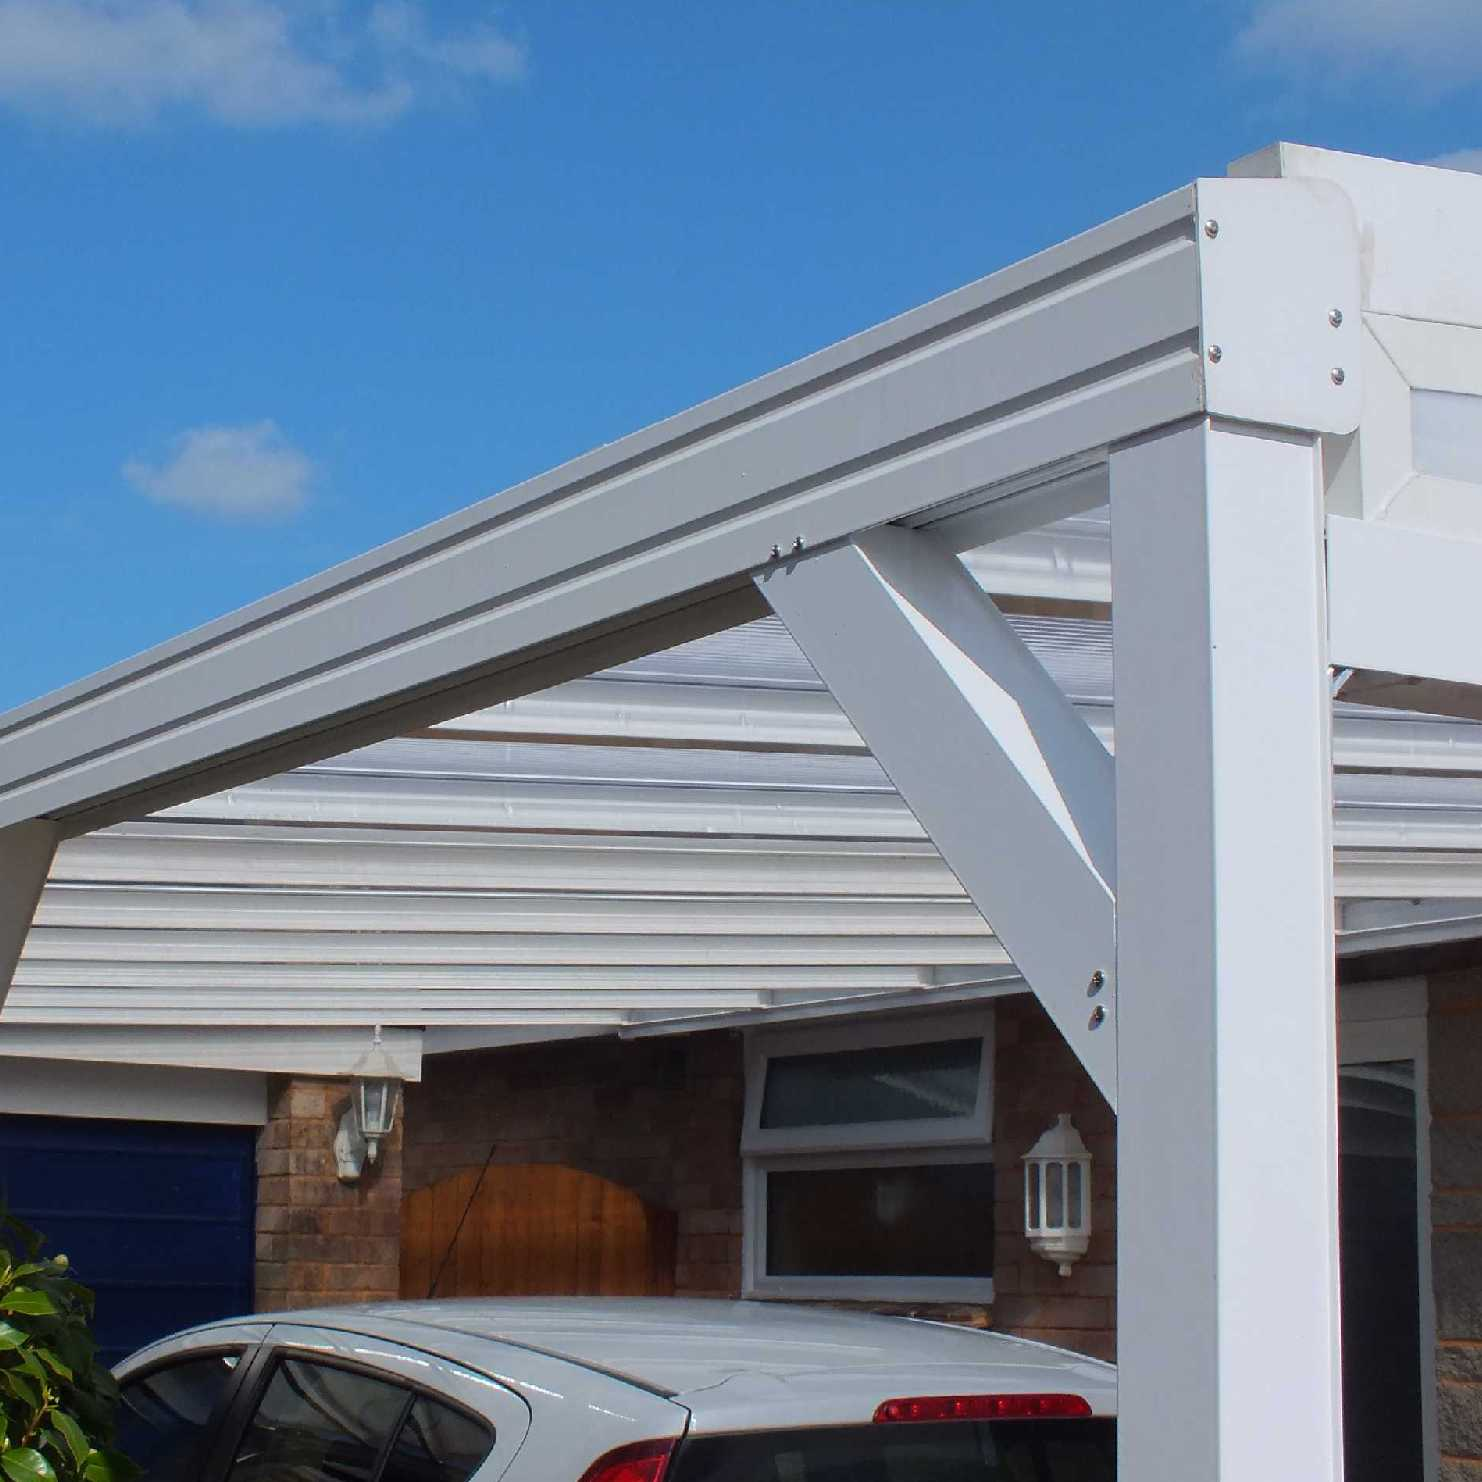 Buy Omega Smart White Lean-To Canopy with 16mm Polycarbonate Glazing - 7.4m (W) x 2.0m (P), (4) Supporting Posts online today